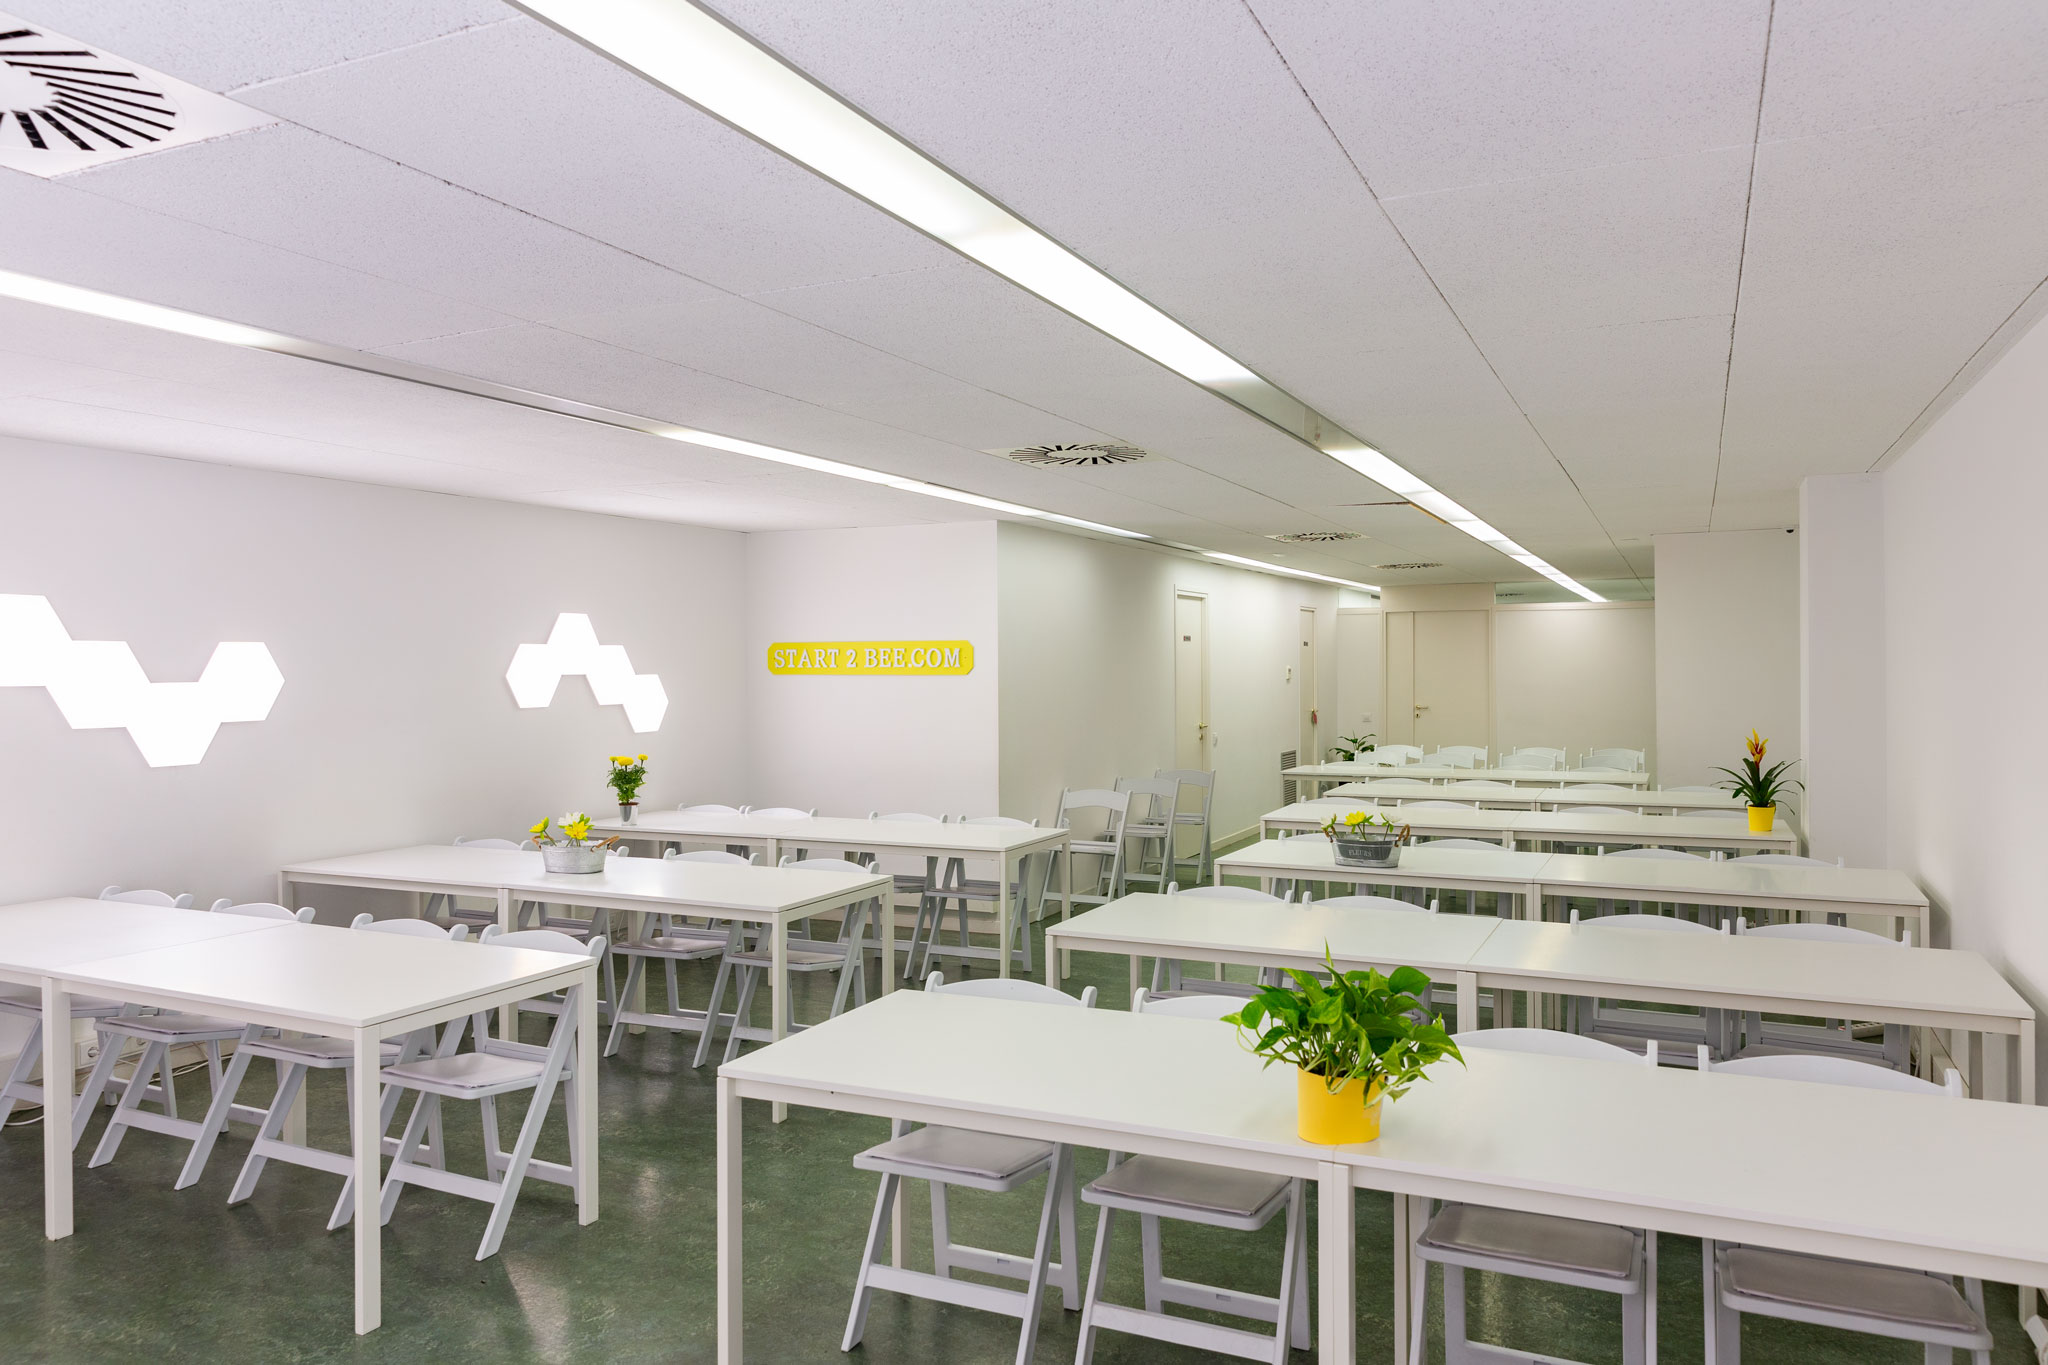 START2BEE COWORKING MEETINGS & EVENTS SPACES -TRAVESSERA-